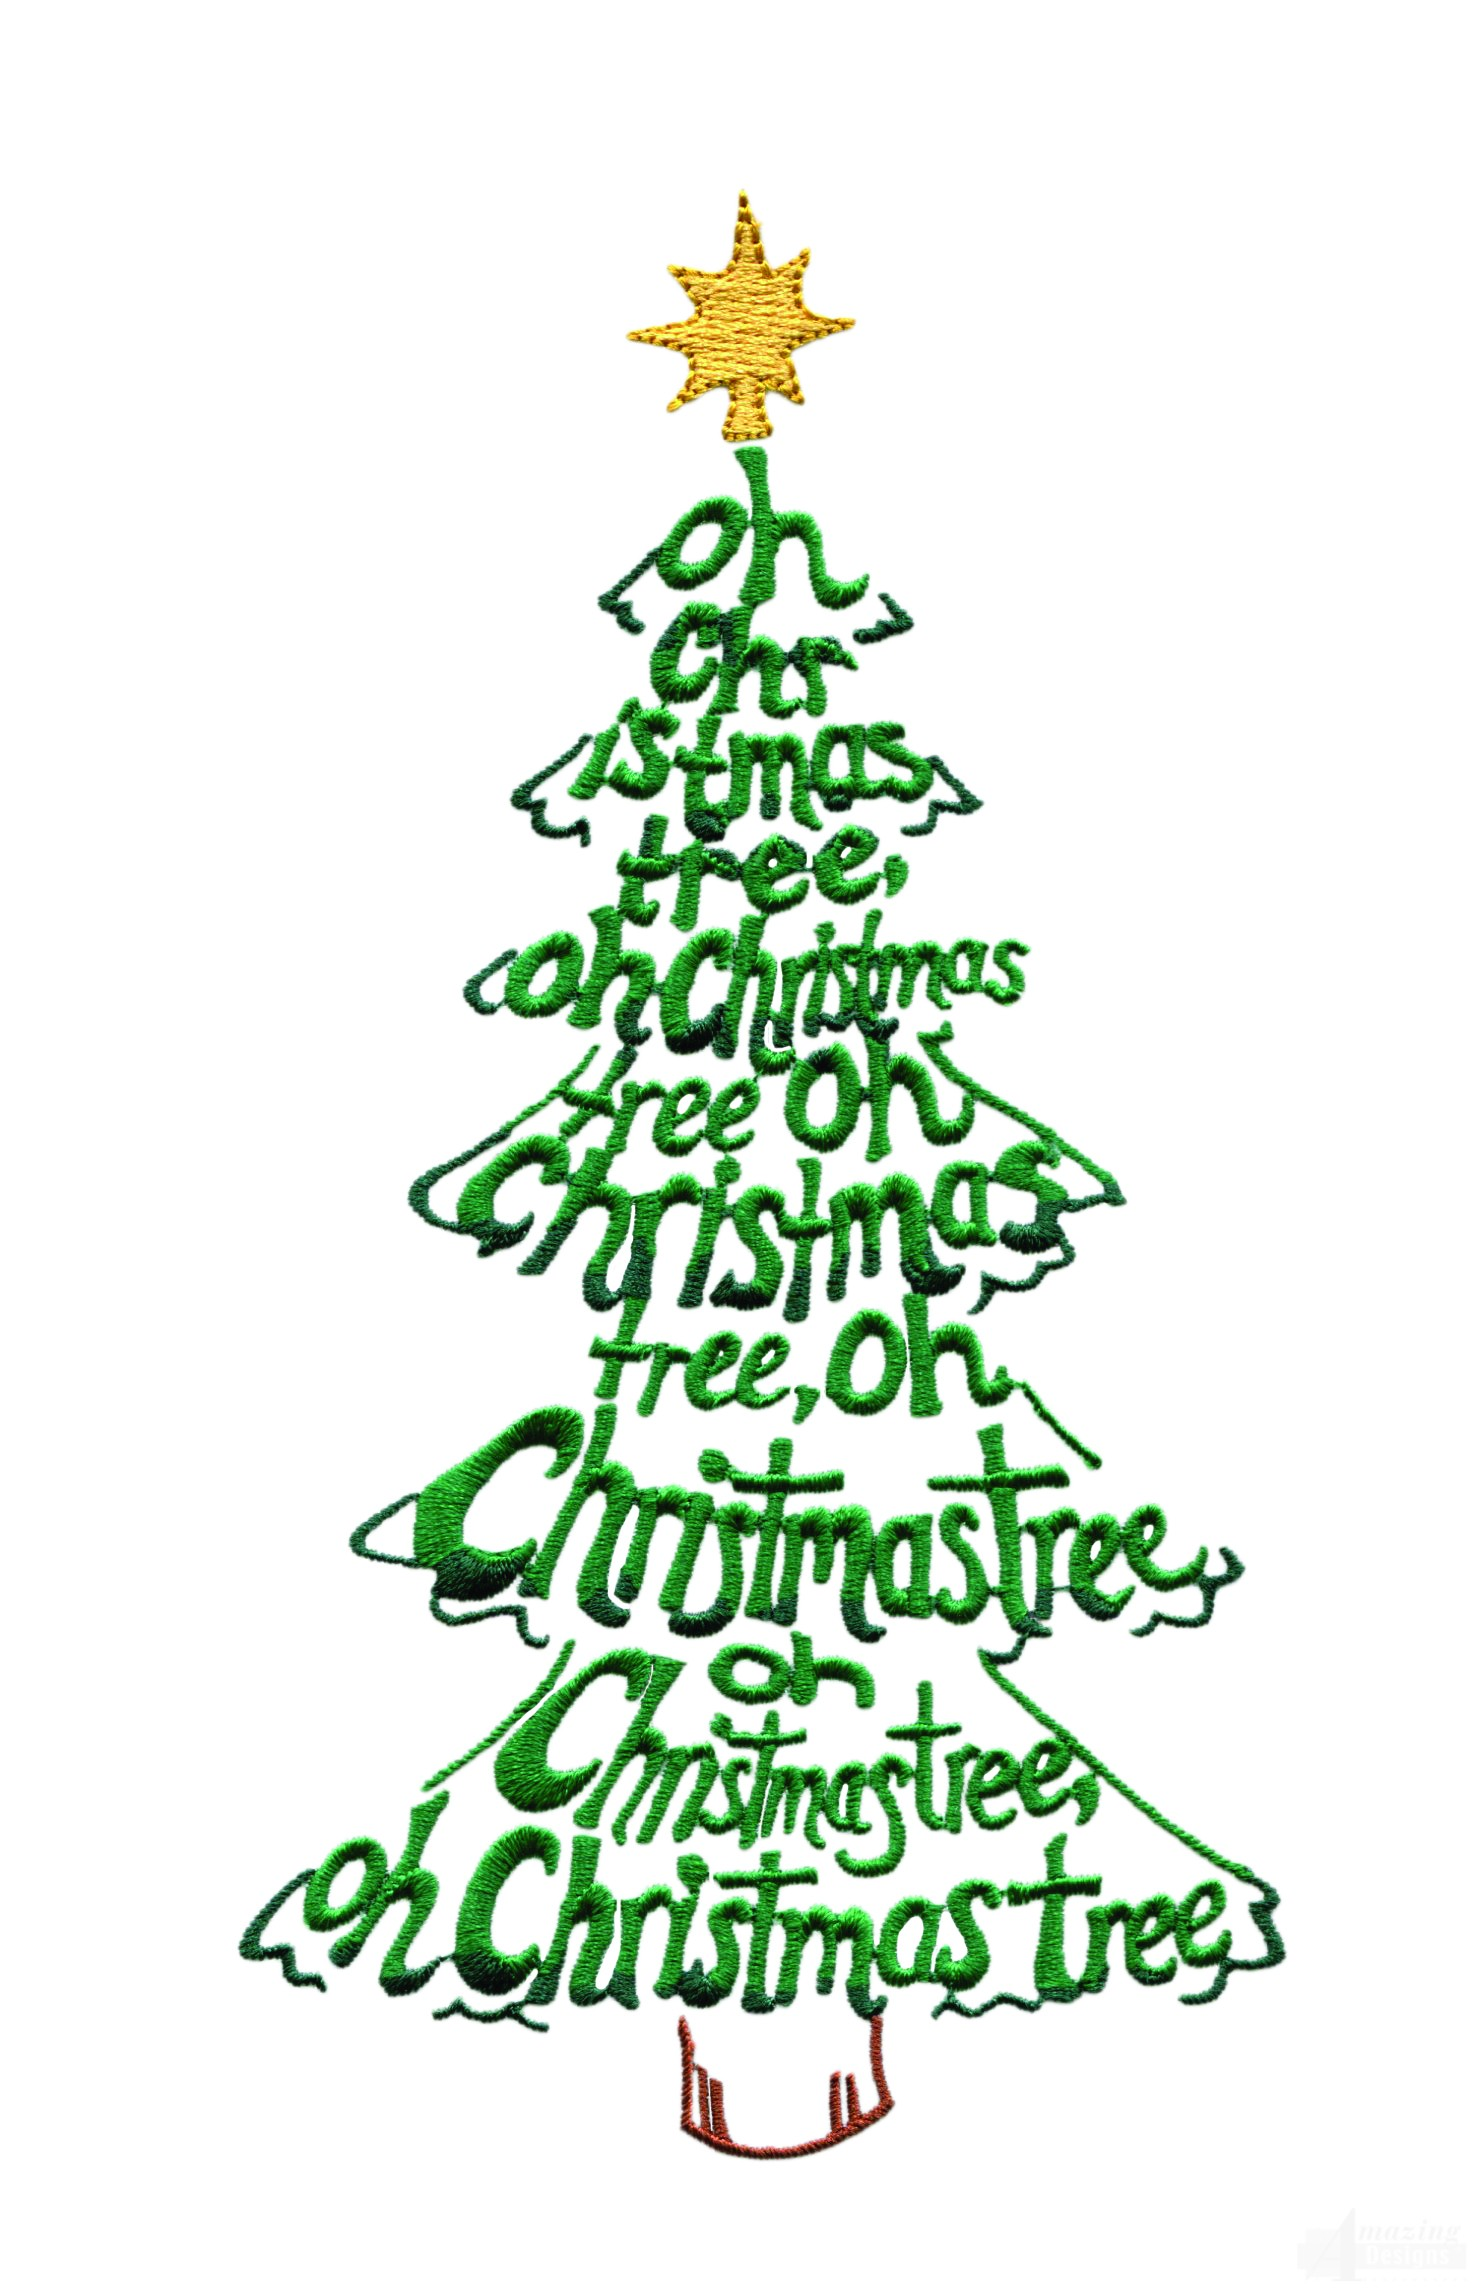 oh christmas tree tree embroidery design - Christmas Tree Designs